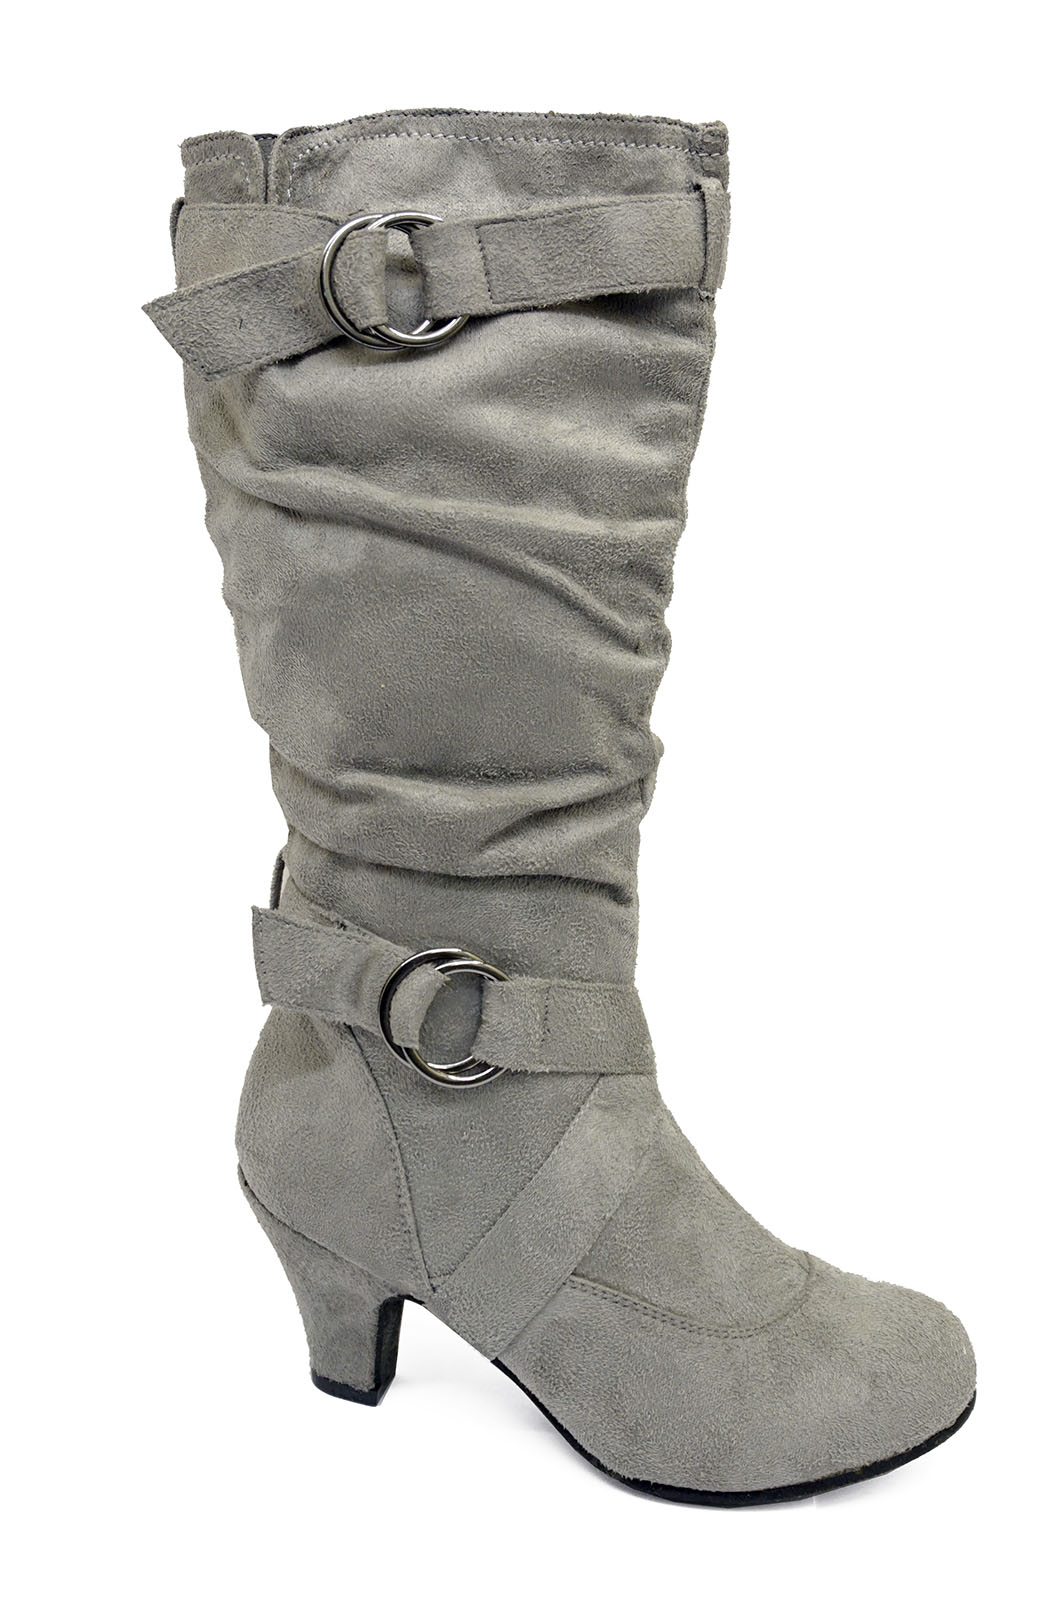 LADIES-GREY-ZIP-UP-BIKER-SLOUCH-RUCHED-TALL-KNEE-CALF-LOW-HEEL-BOOTS-SHOES-4-10 thumbnail 11